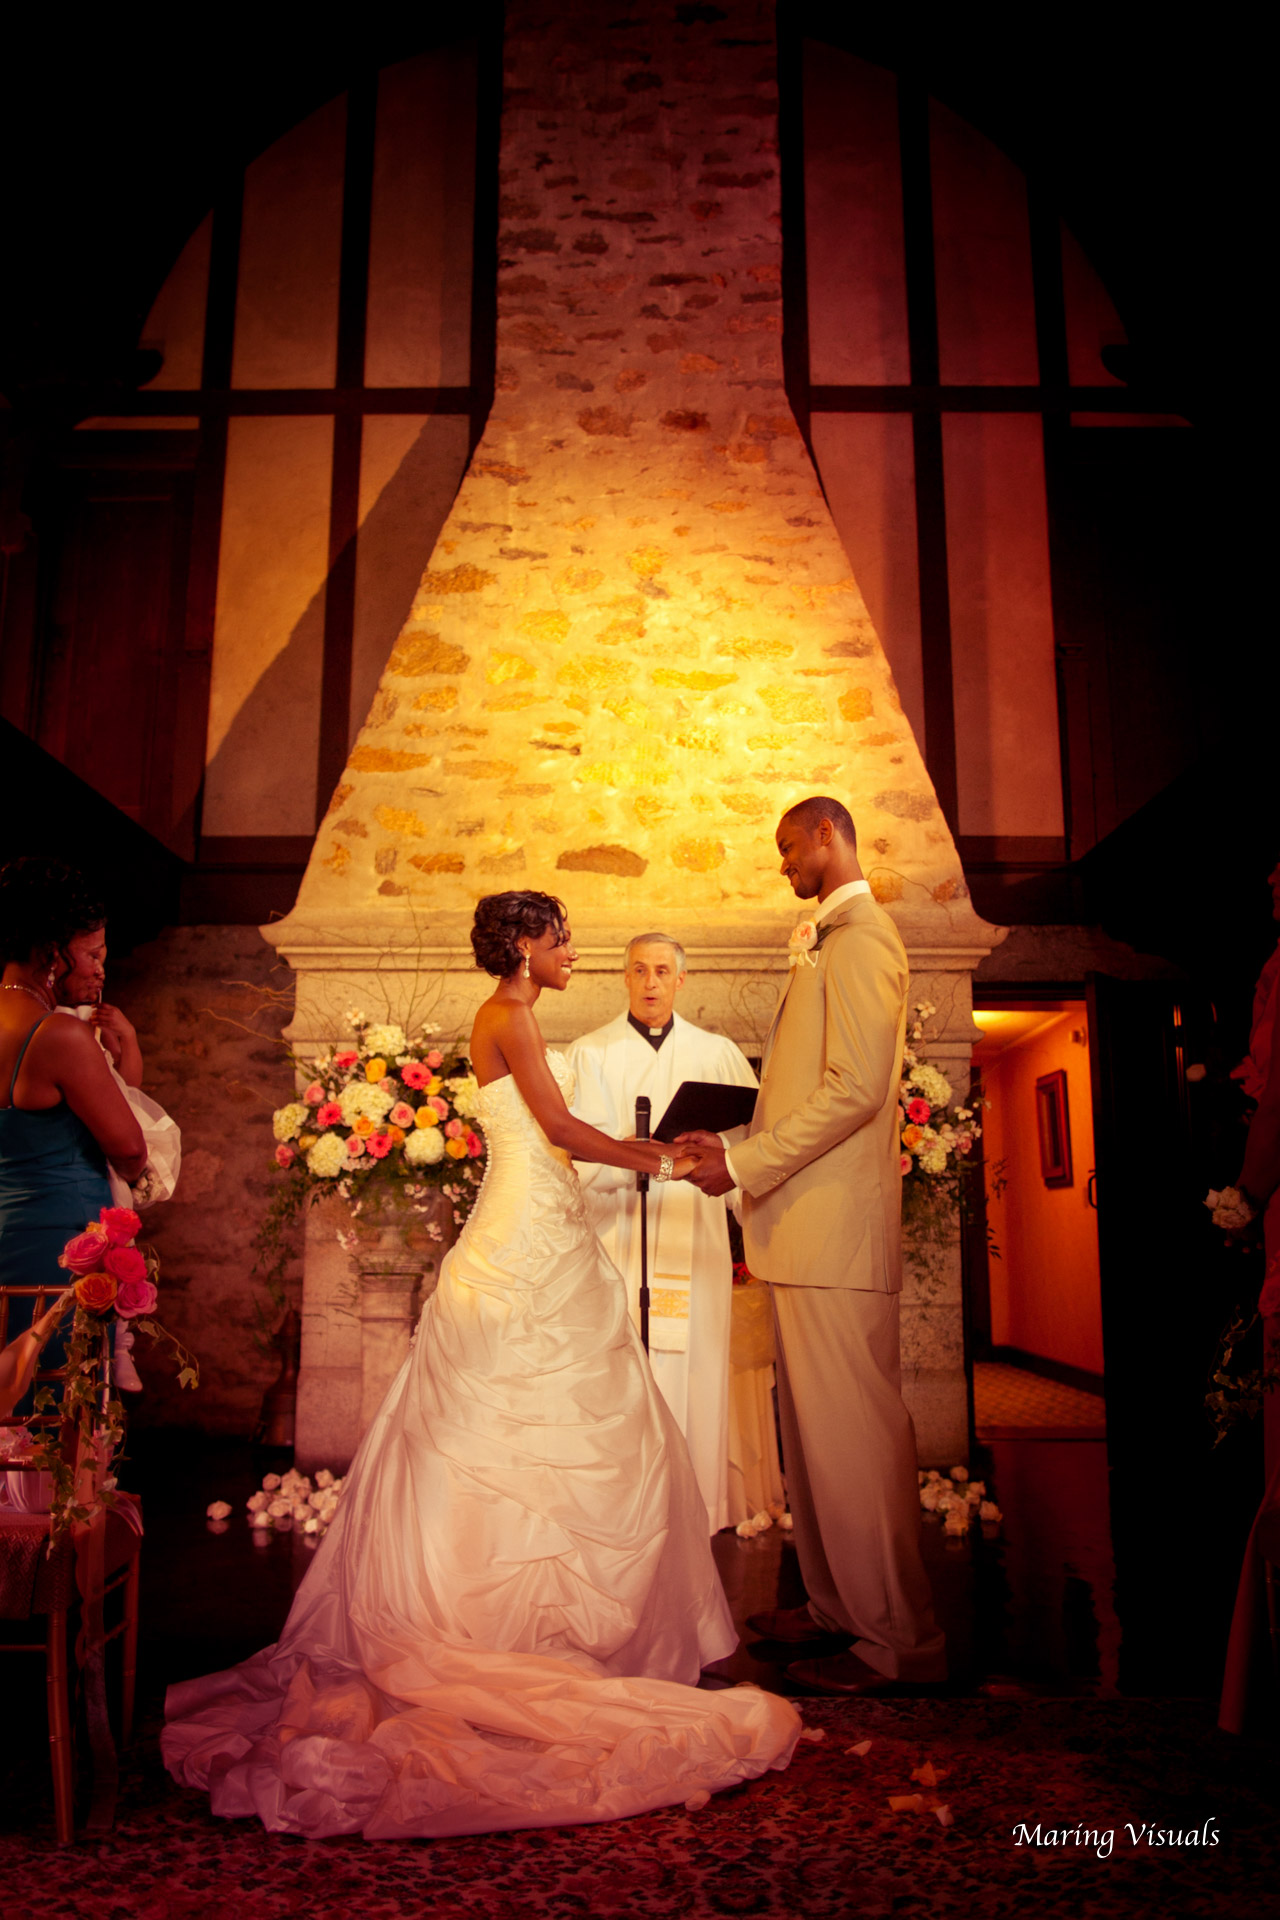 Wedding at Saint Clements Castle with Photography by Maring Visuals